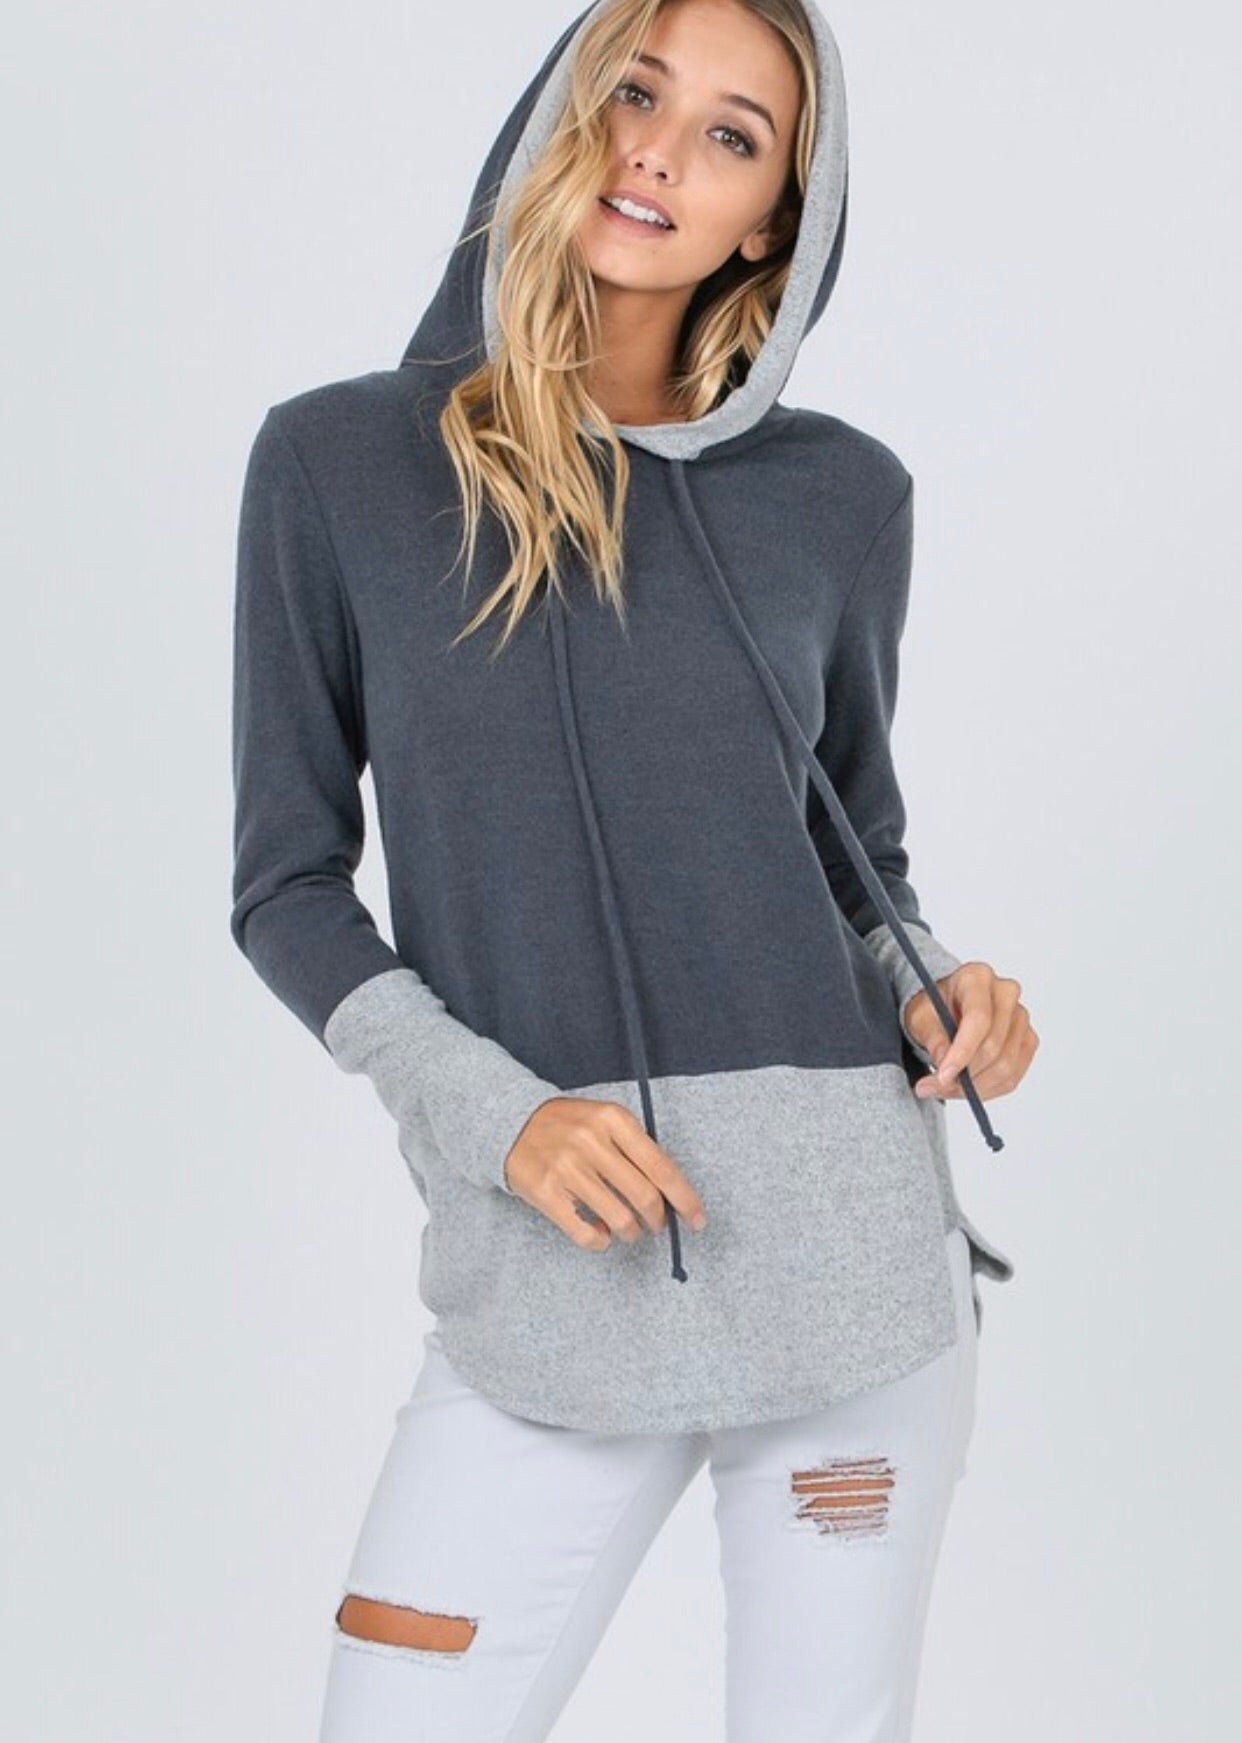 Charcoal 2 Toned Hooded Sweatshirt